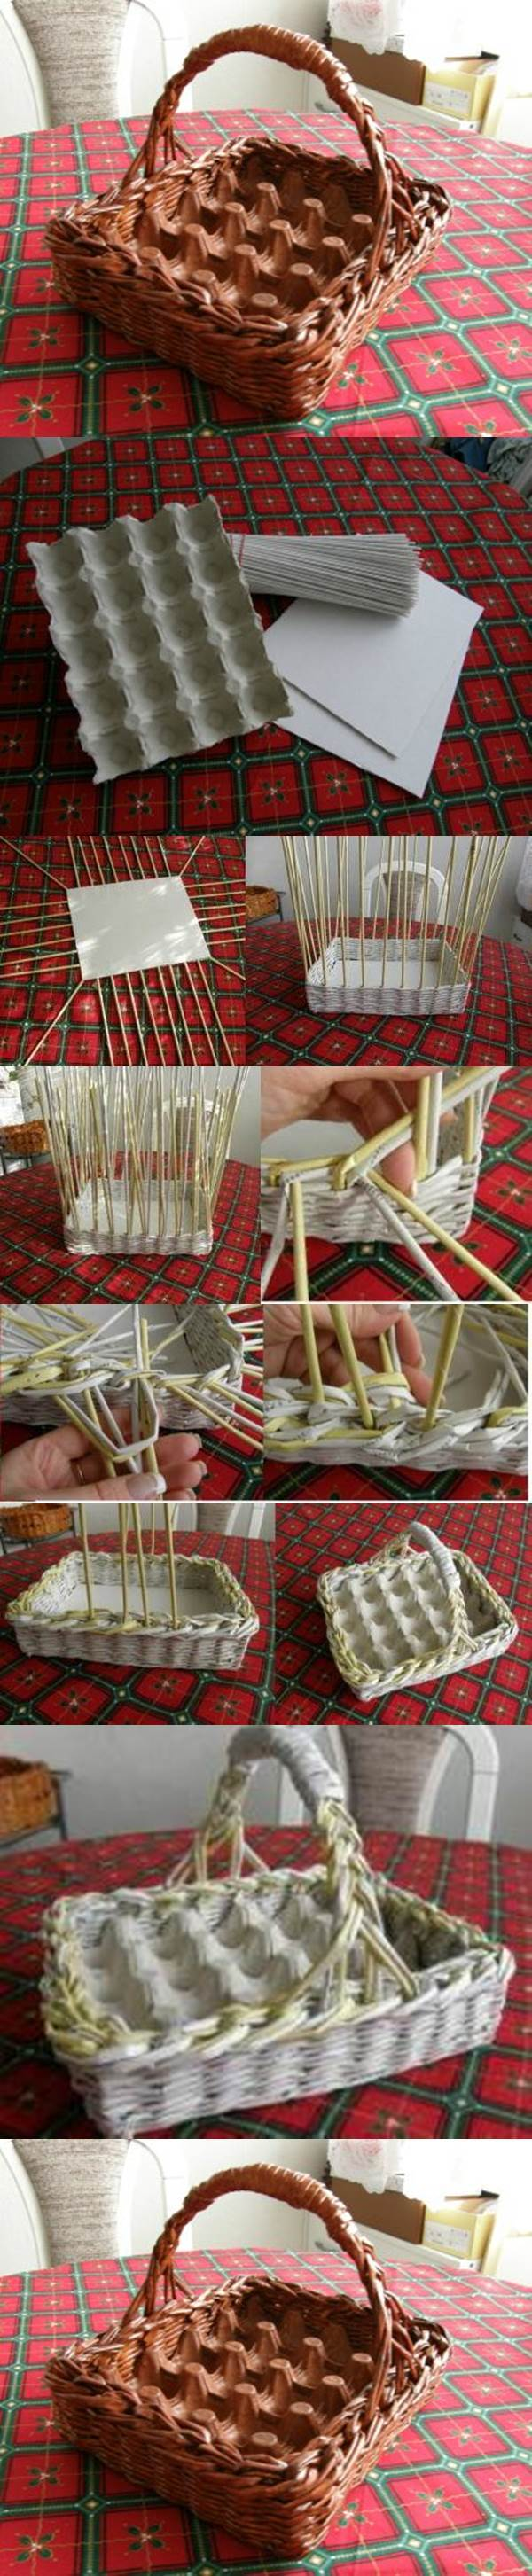 DIY Woven Paper Easter Egg Basket and Tray 2